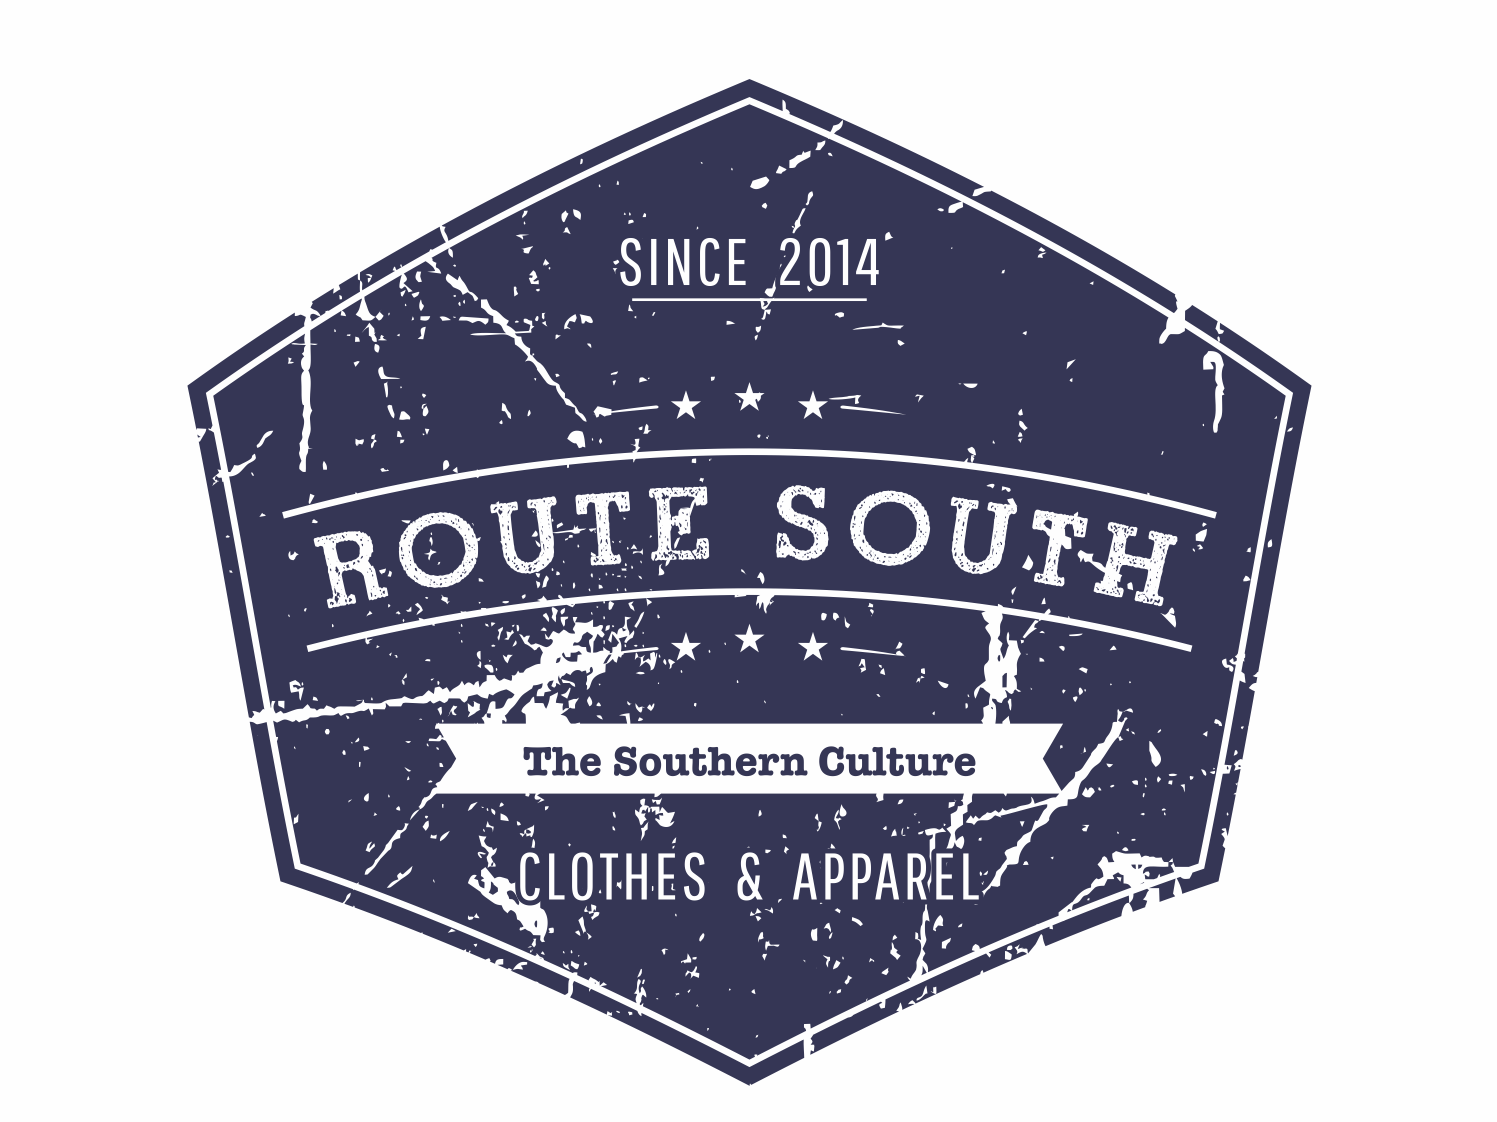 Route South logo #3 graphic  design iso retro badge round circular retro contest gray blue usa lifestyle apparel americana label tshirt south route clothing brand logo